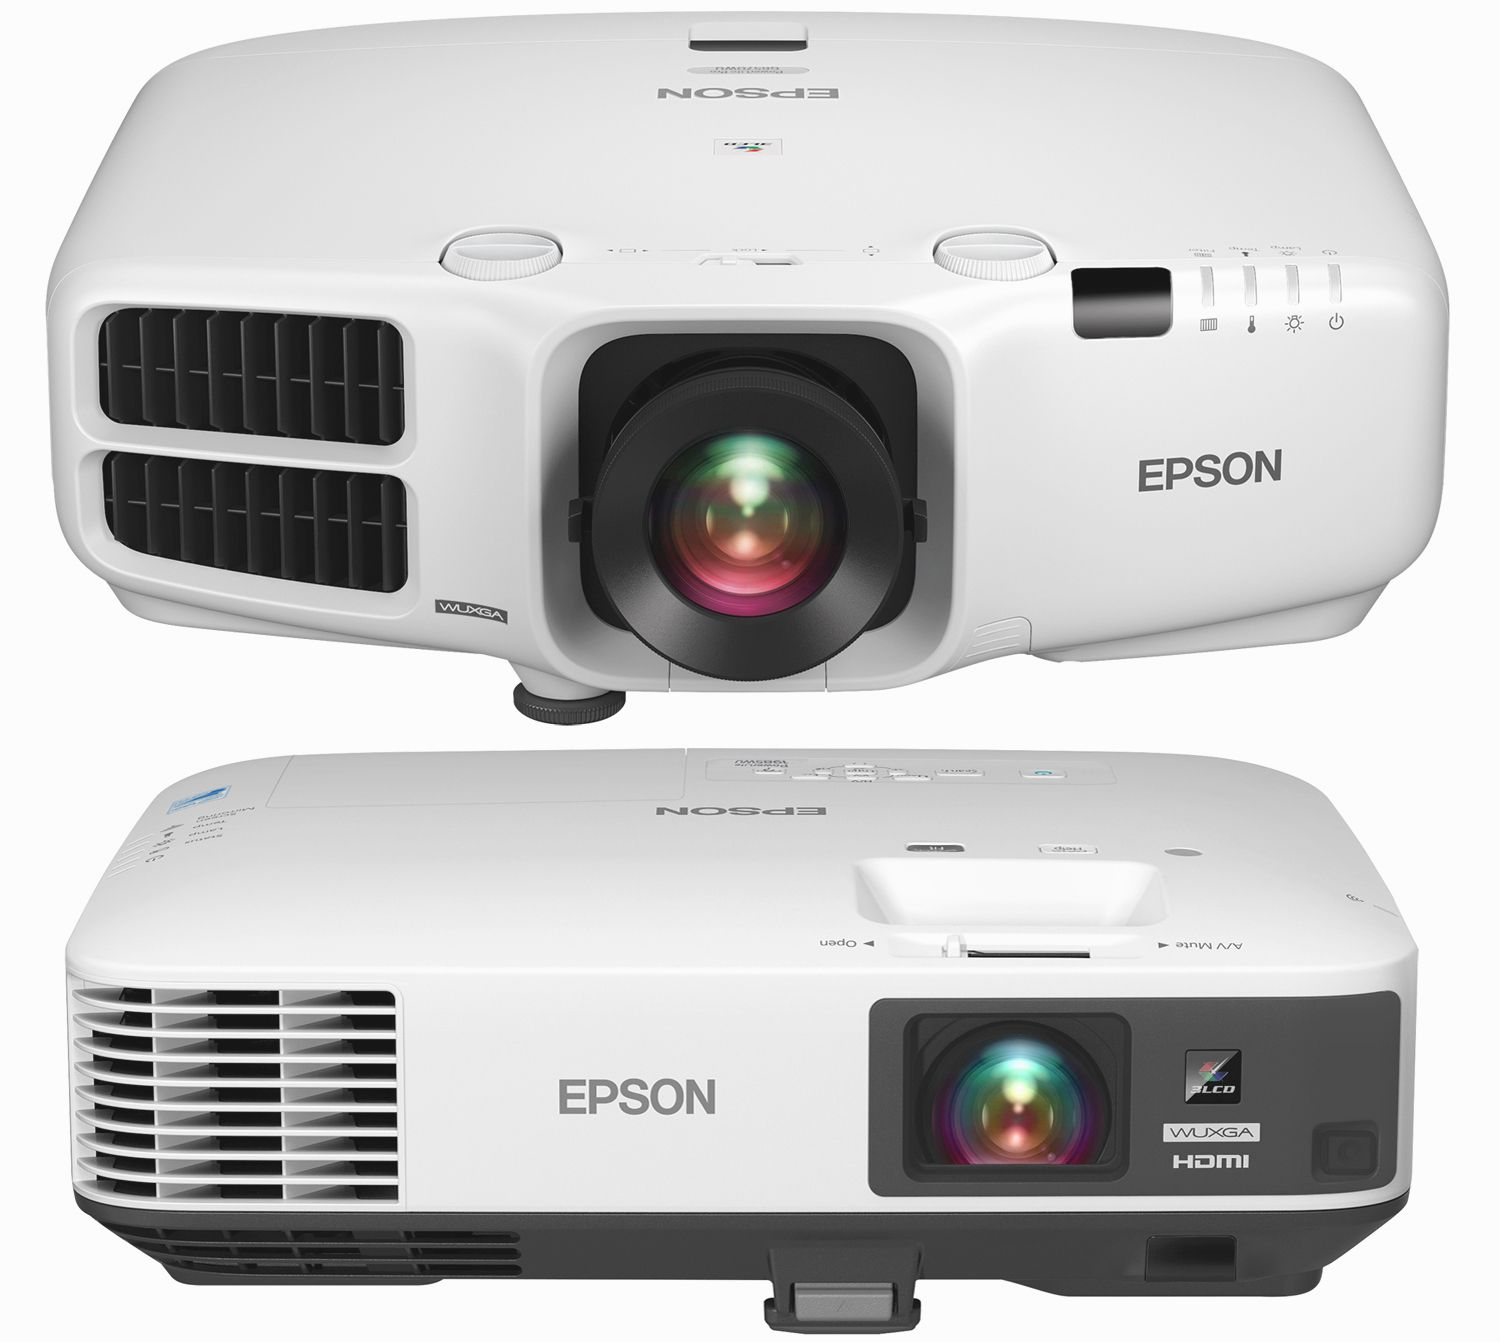 Epson Entry Level Home Cinema LCD Video Projector